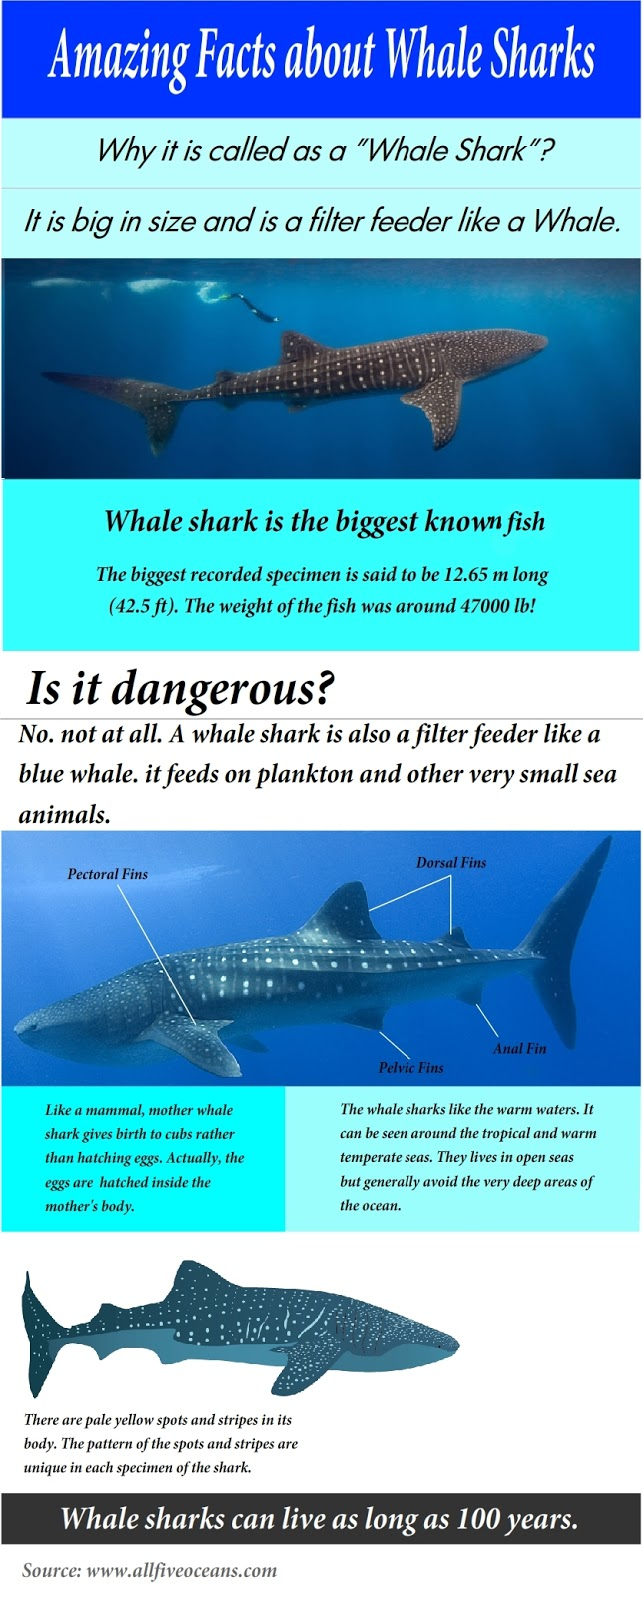 Amazing Facts about Whale Sharks